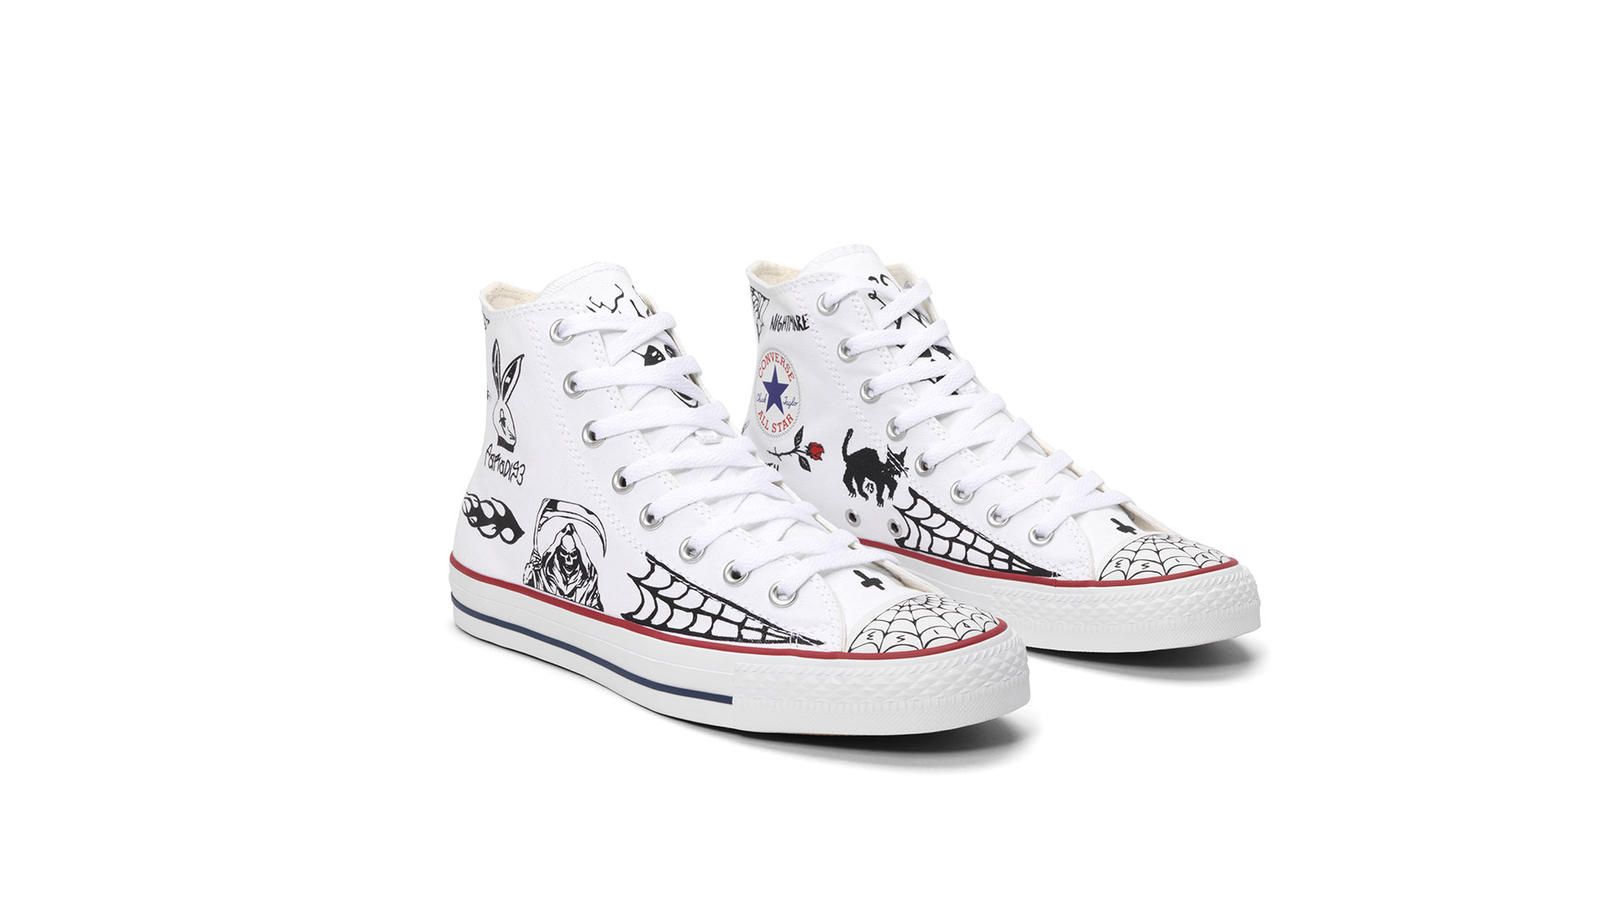 Converse CONS x Sean Pablo Chuck Taylor All Star Collection